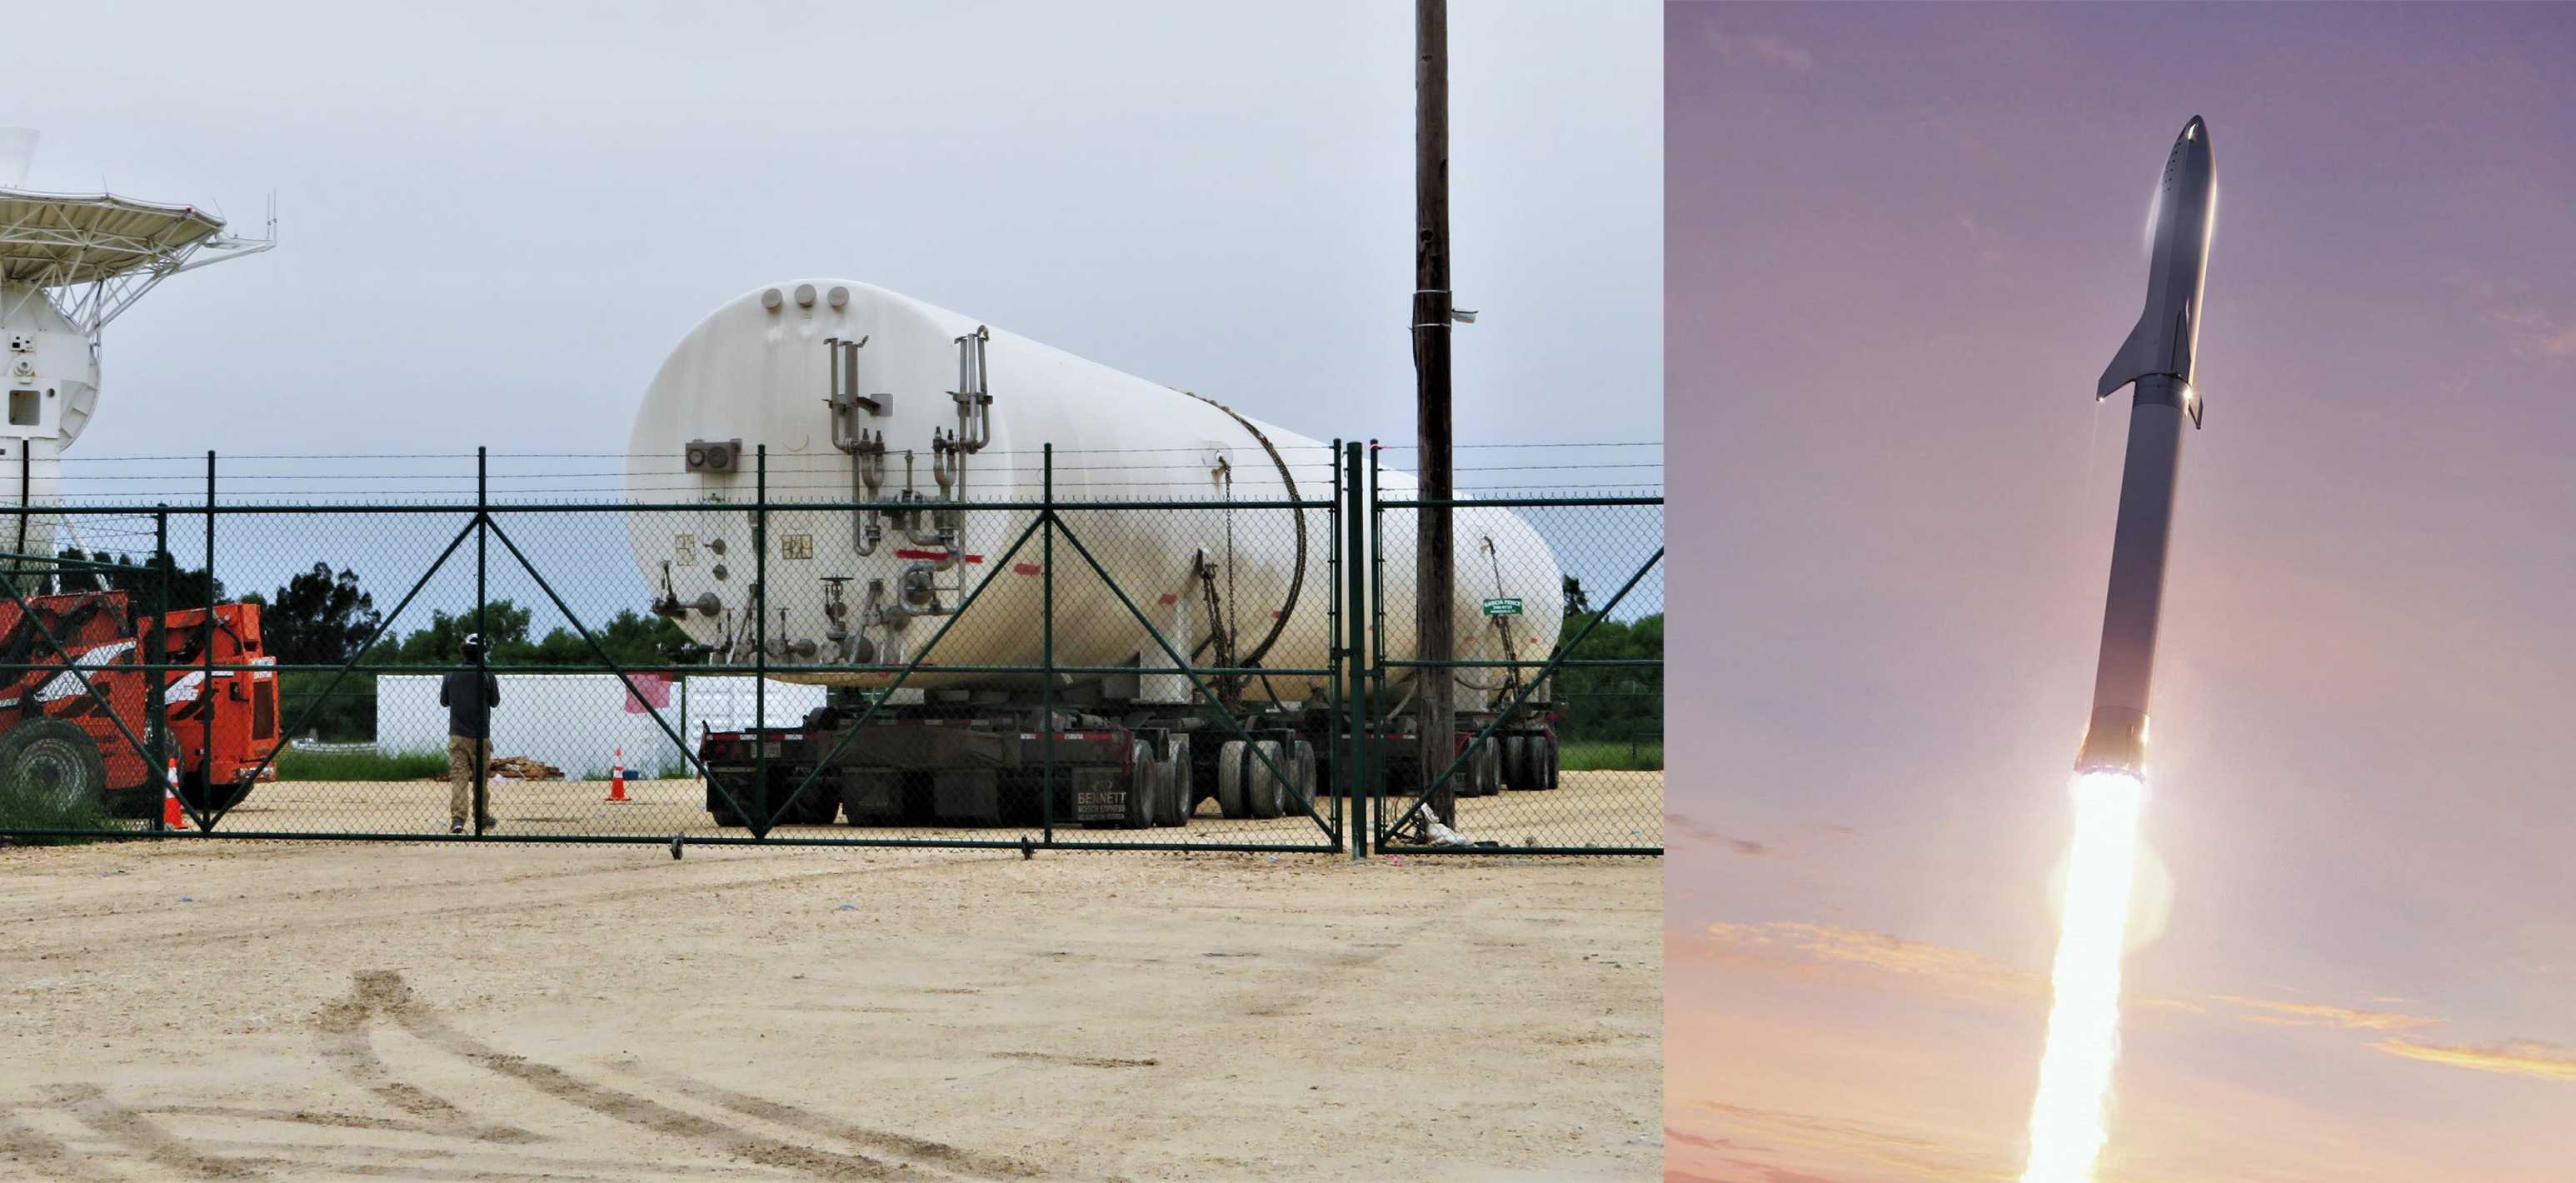 LNG tank arrival 102318 + BFR (bocachicagal) feature 3